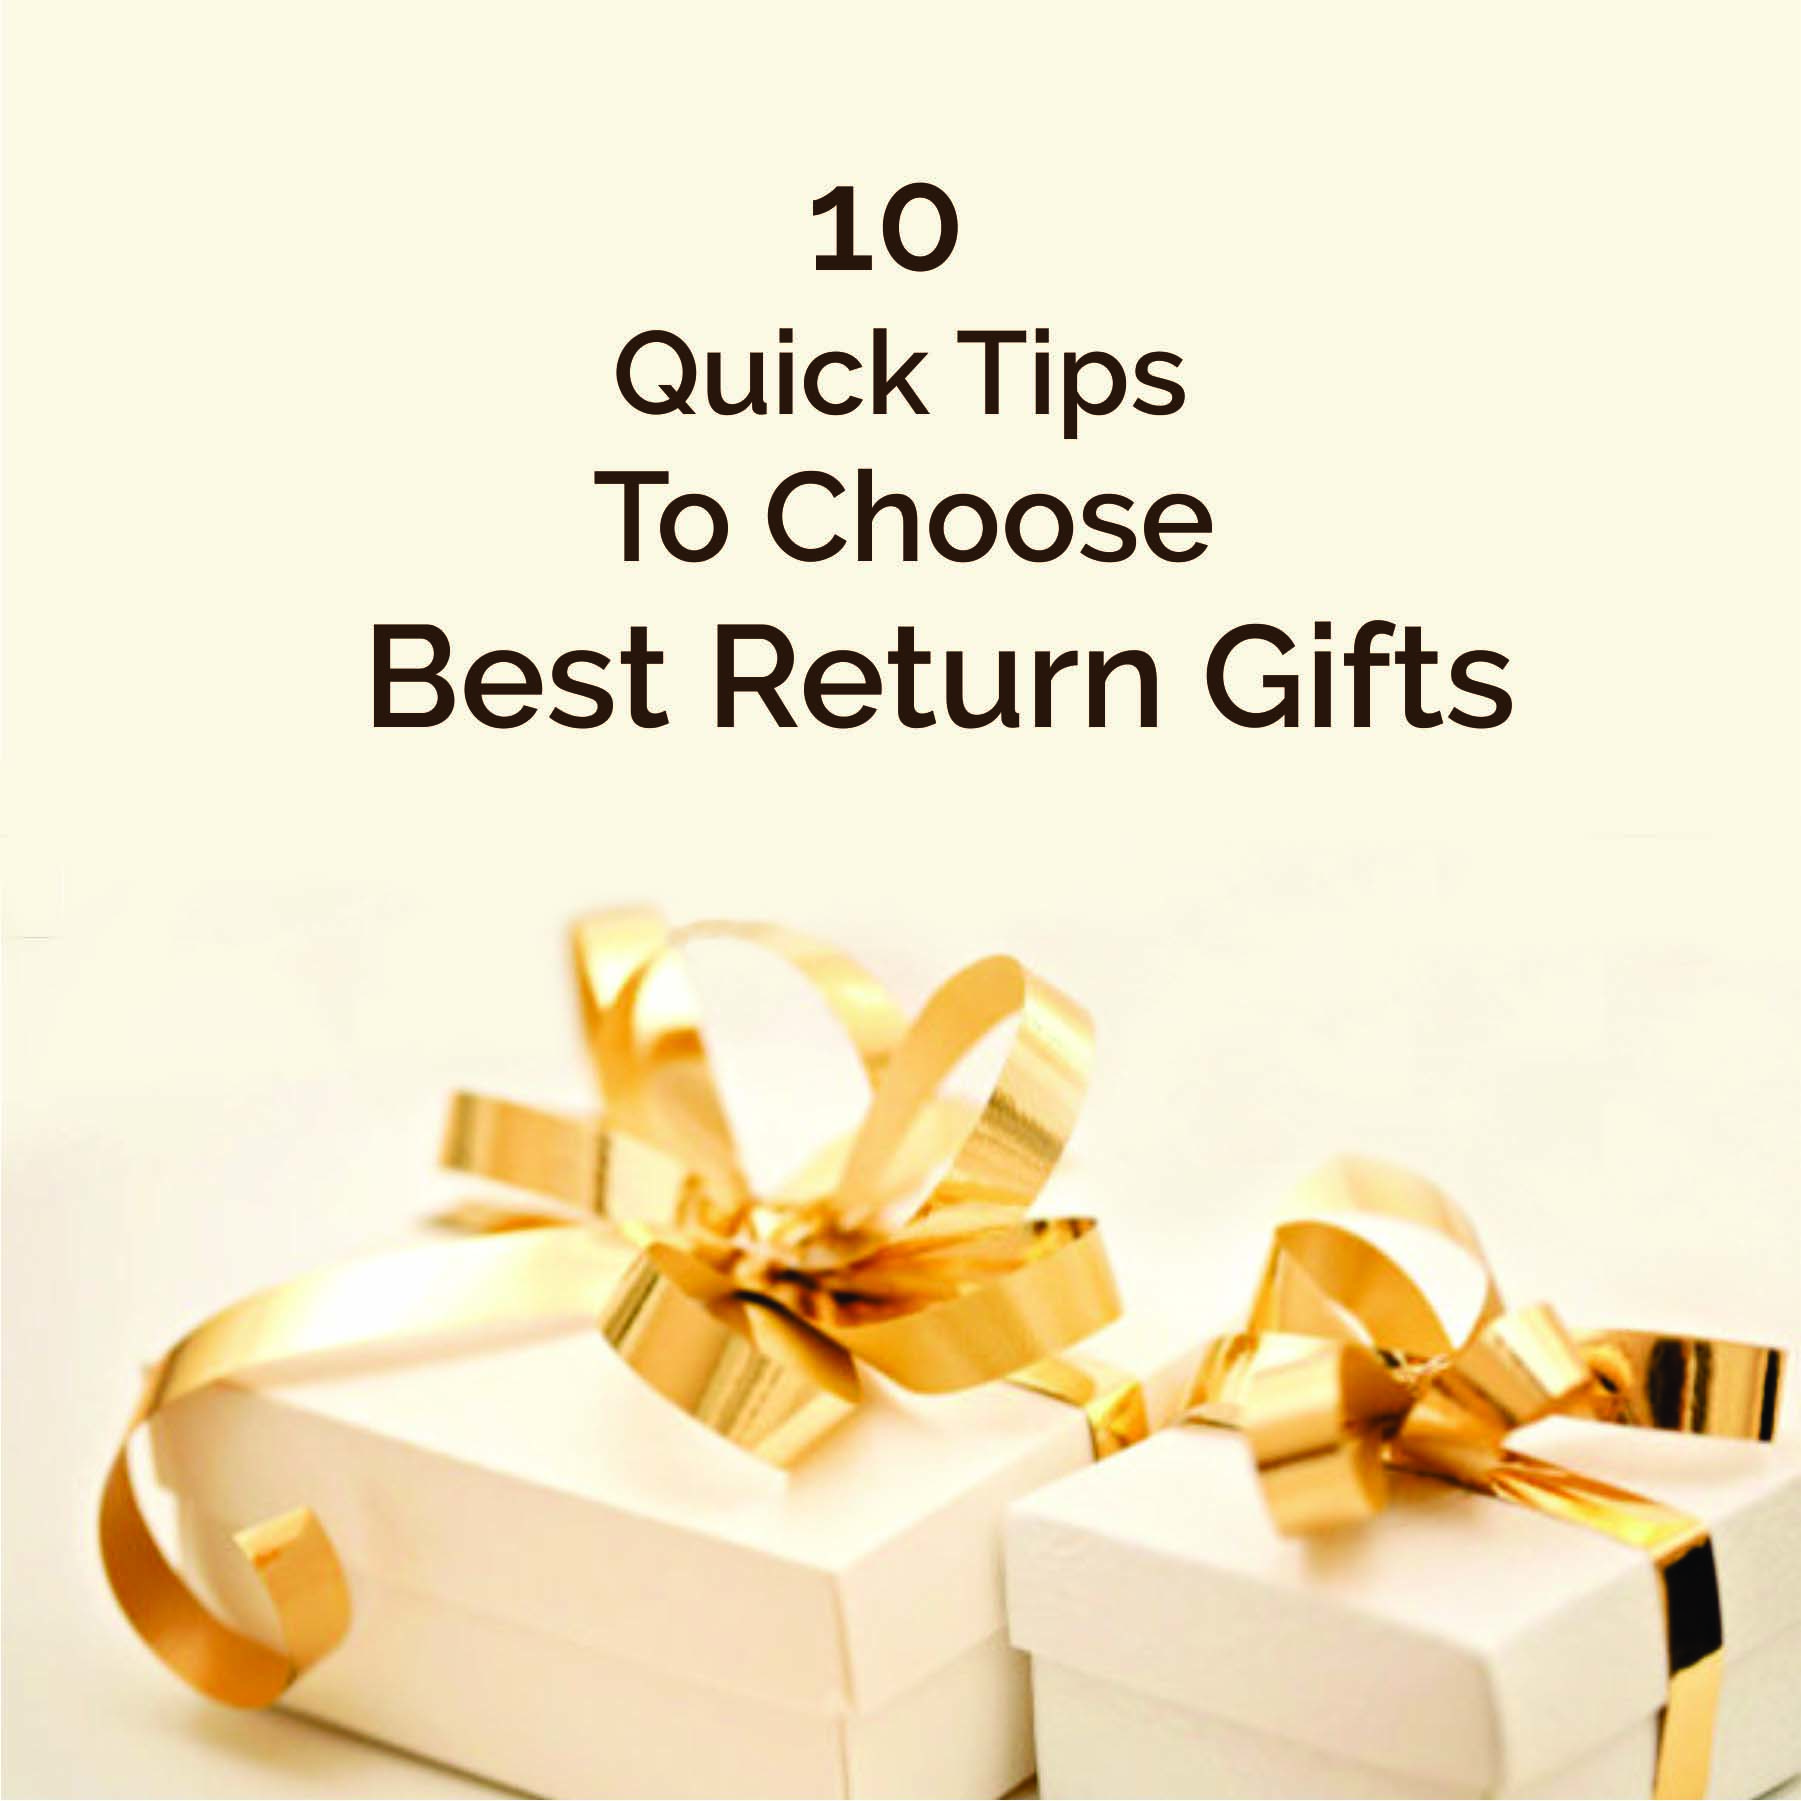 10 Quick Tips to choose best return gifts